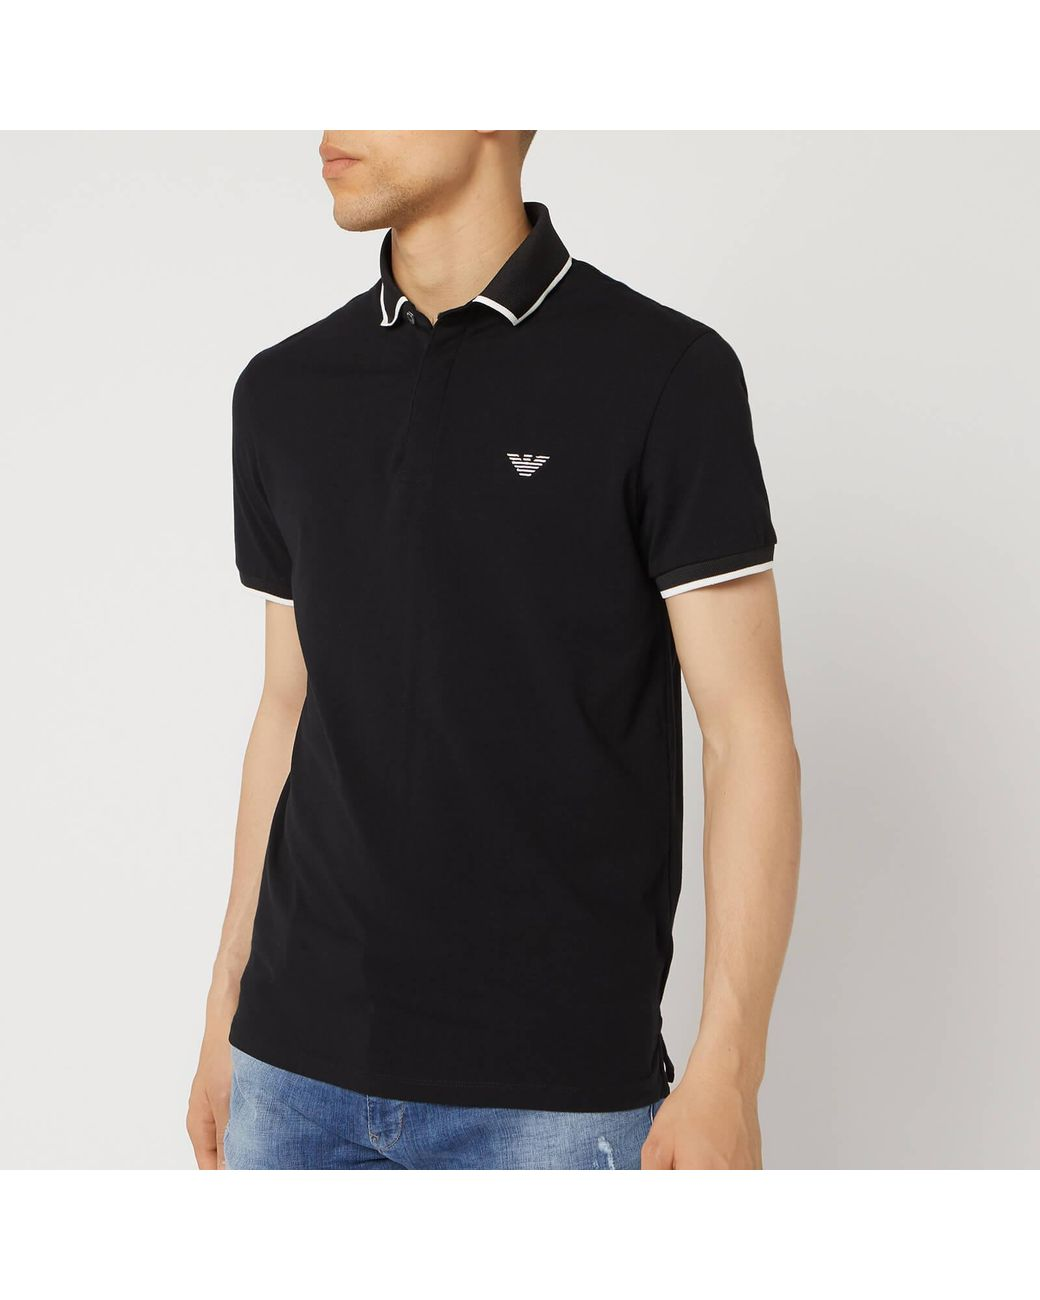 ffe1d73ffe Men's Black Tipped Cotton Polo Shirt